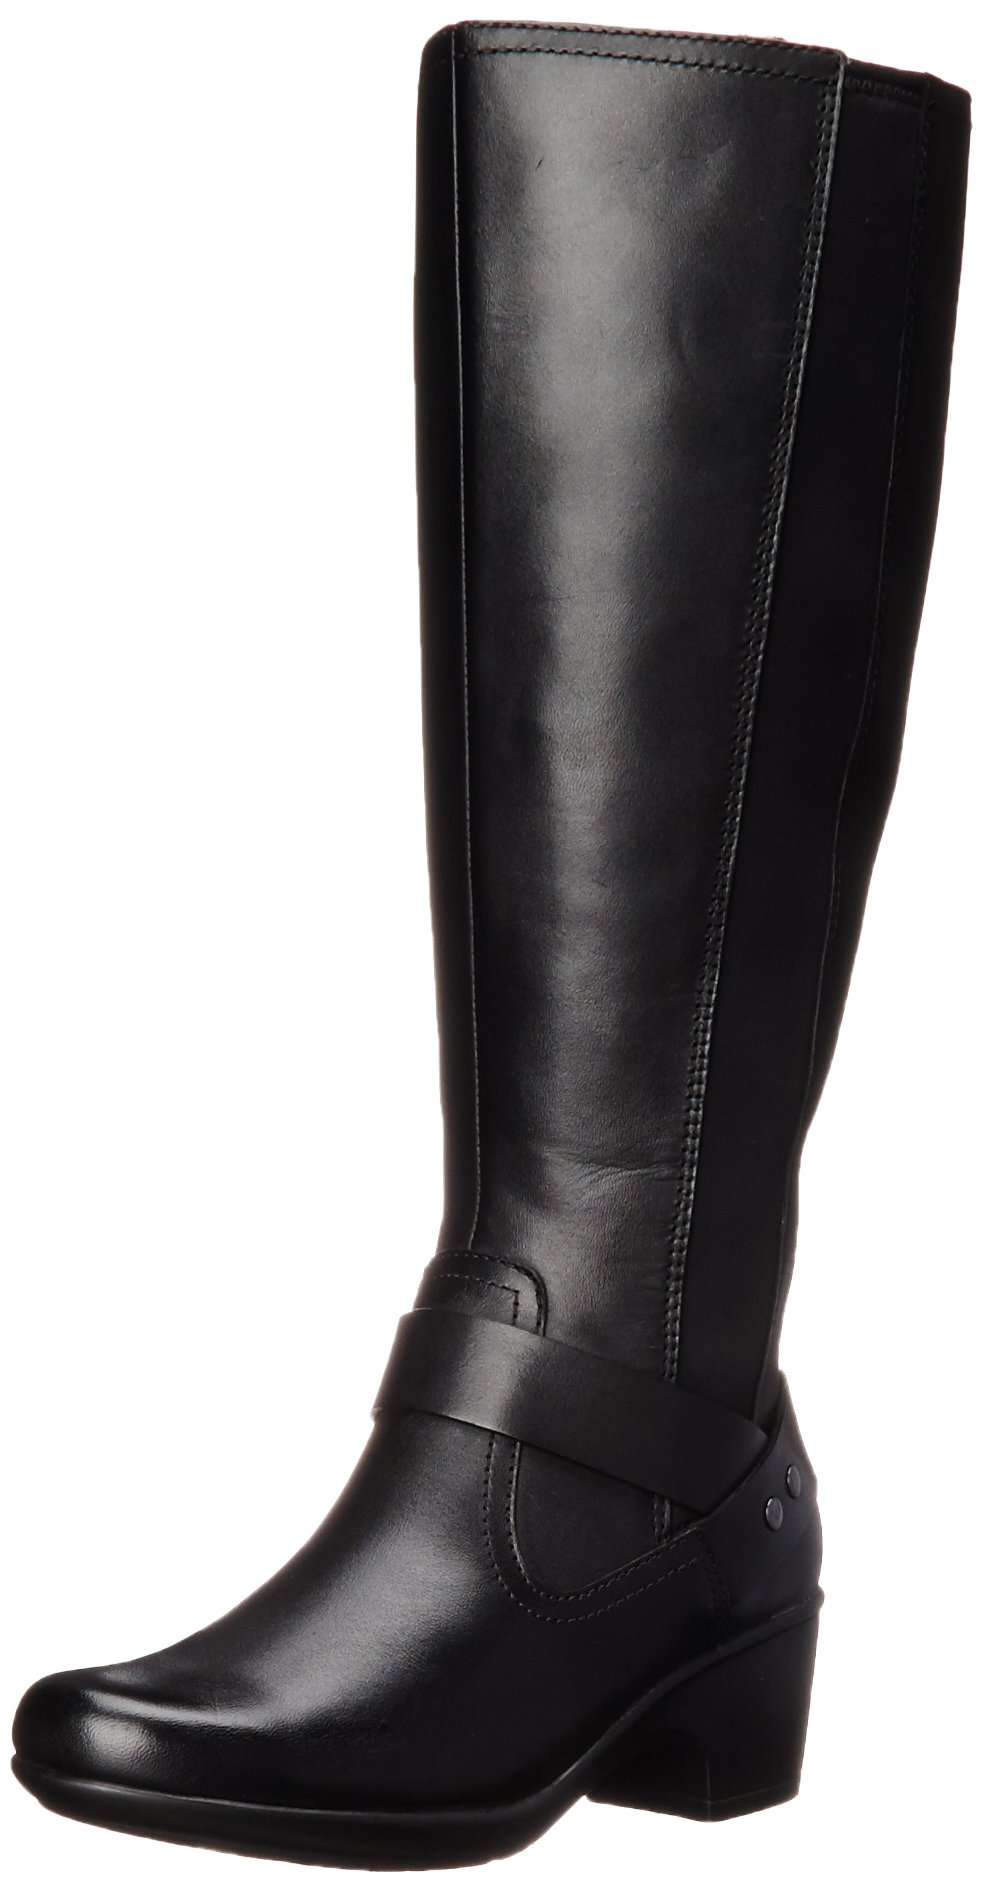 Clarks Women's Malia Waves Riding Boot, Black Leather, 6.5 M US